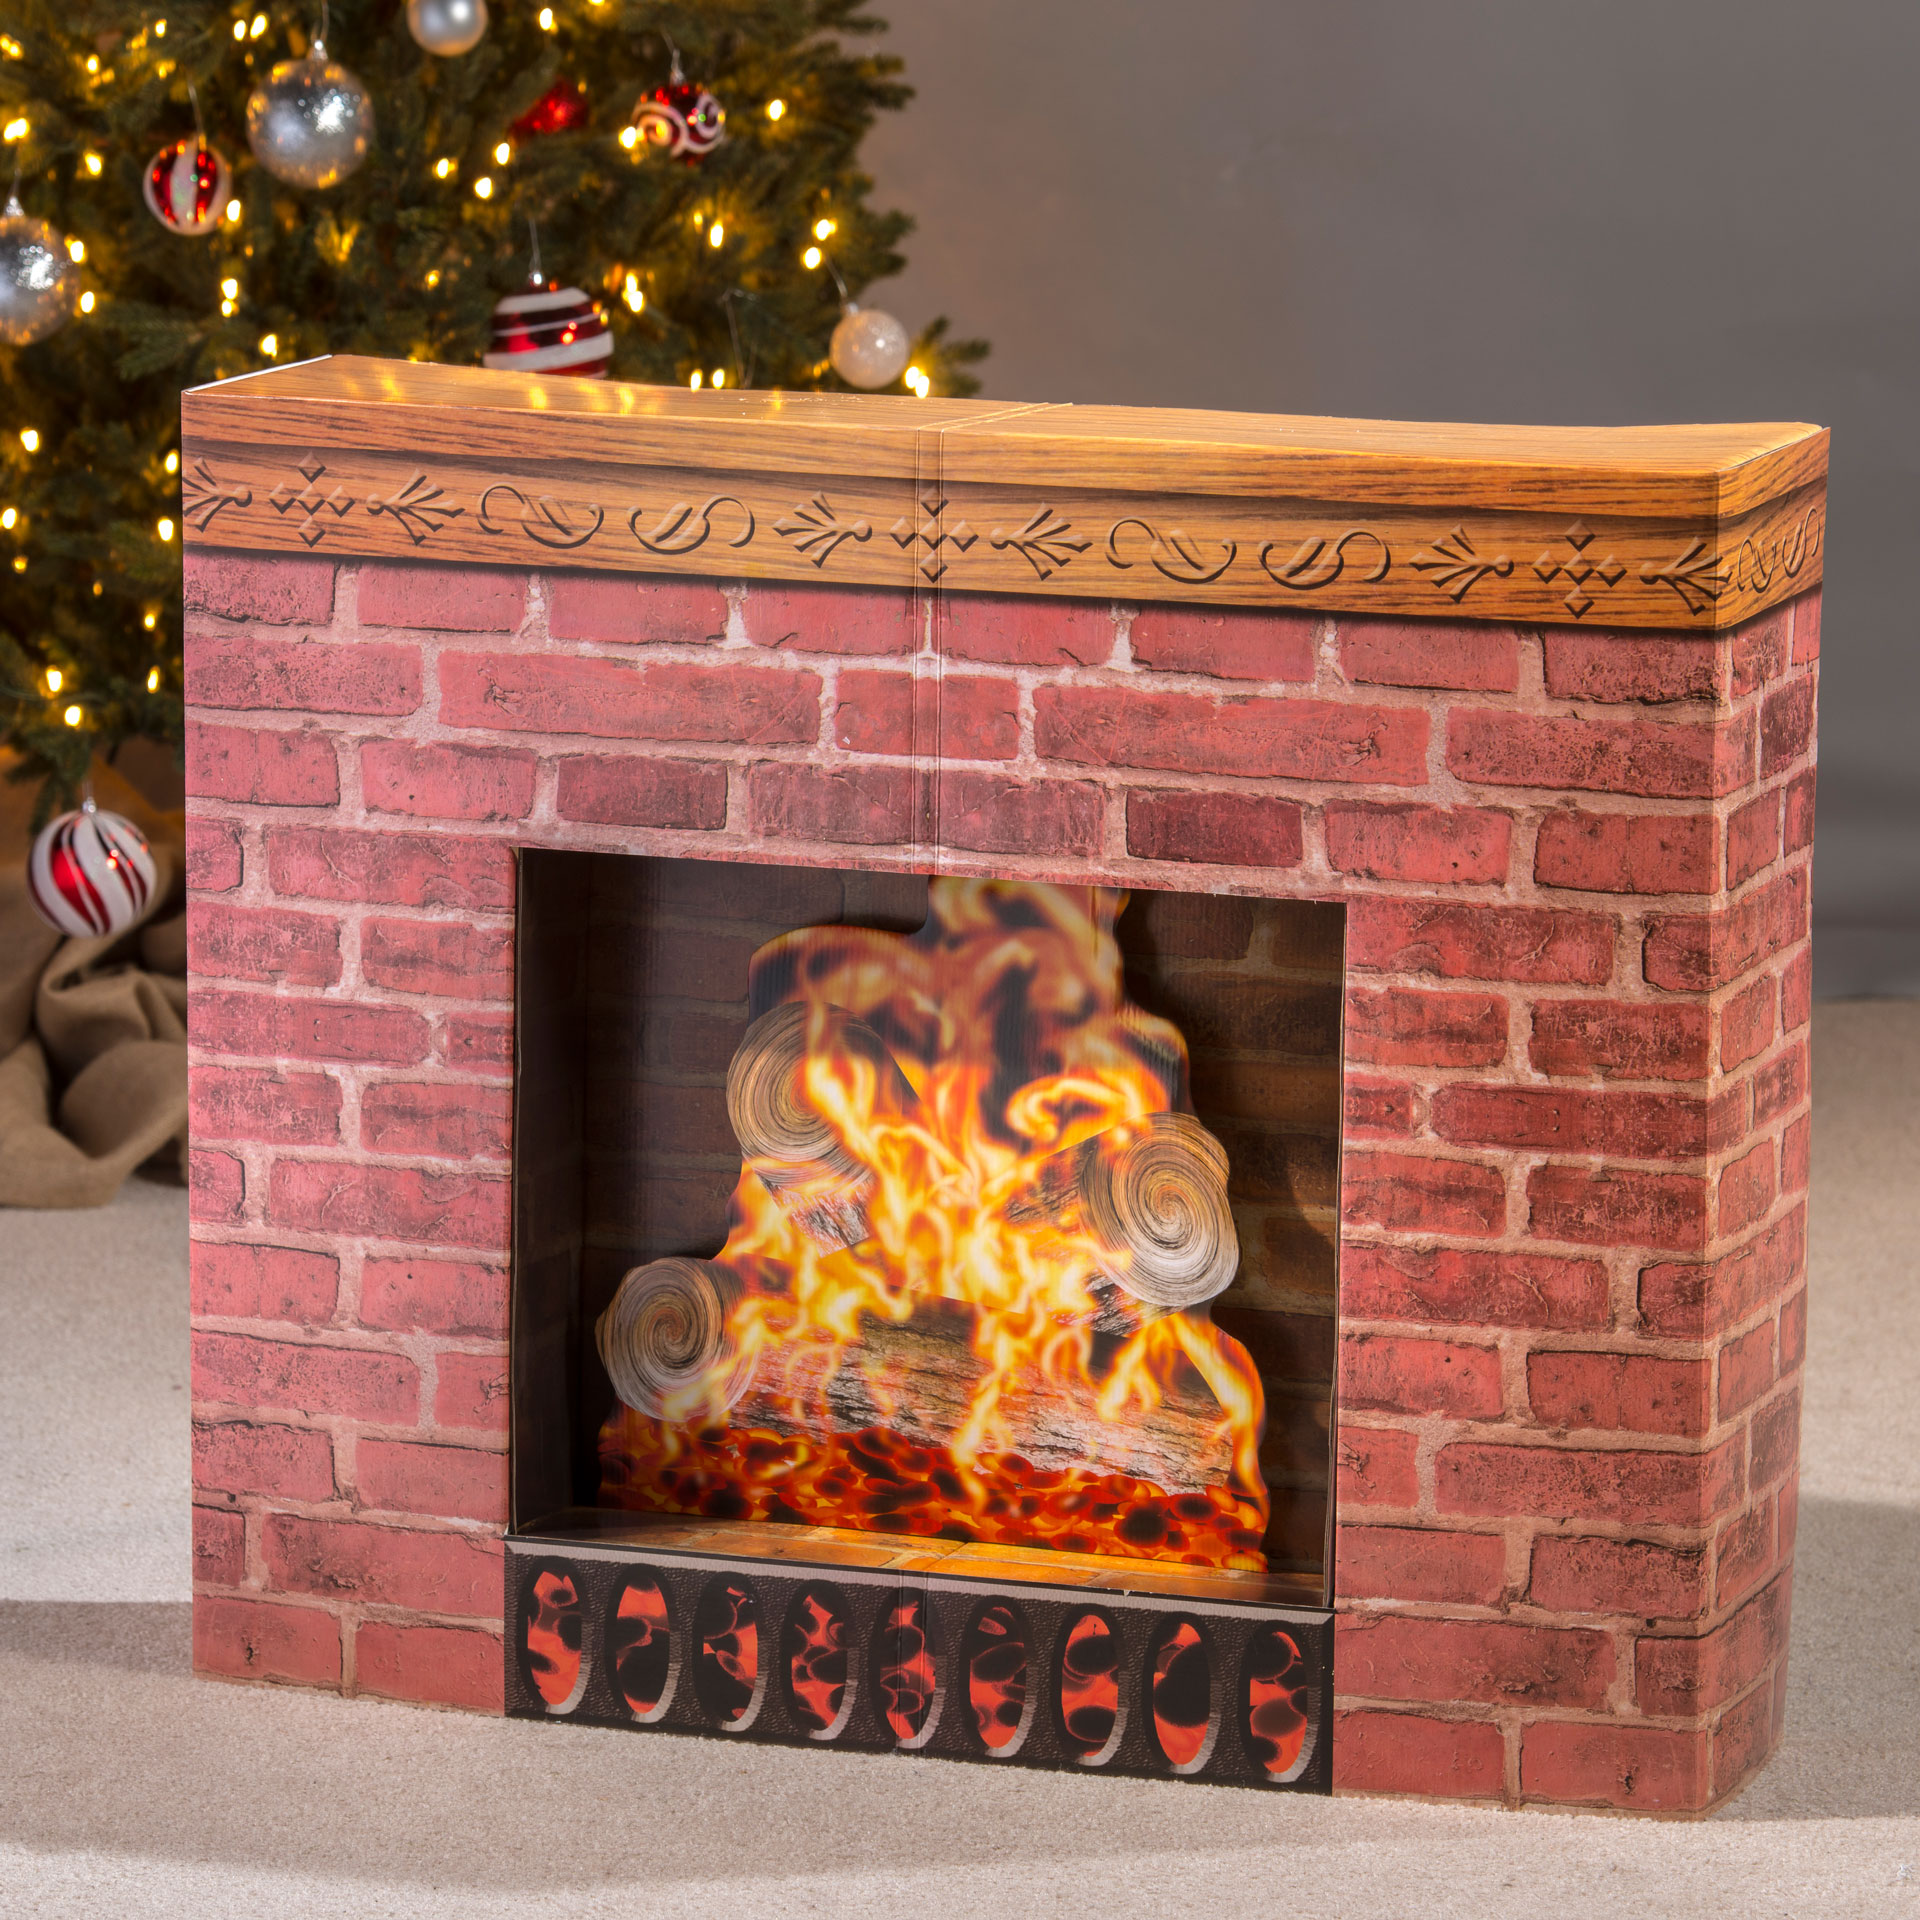 Christmas Fire Place Images.Fireplace Prop Cardboard Stand Up Walmart Com